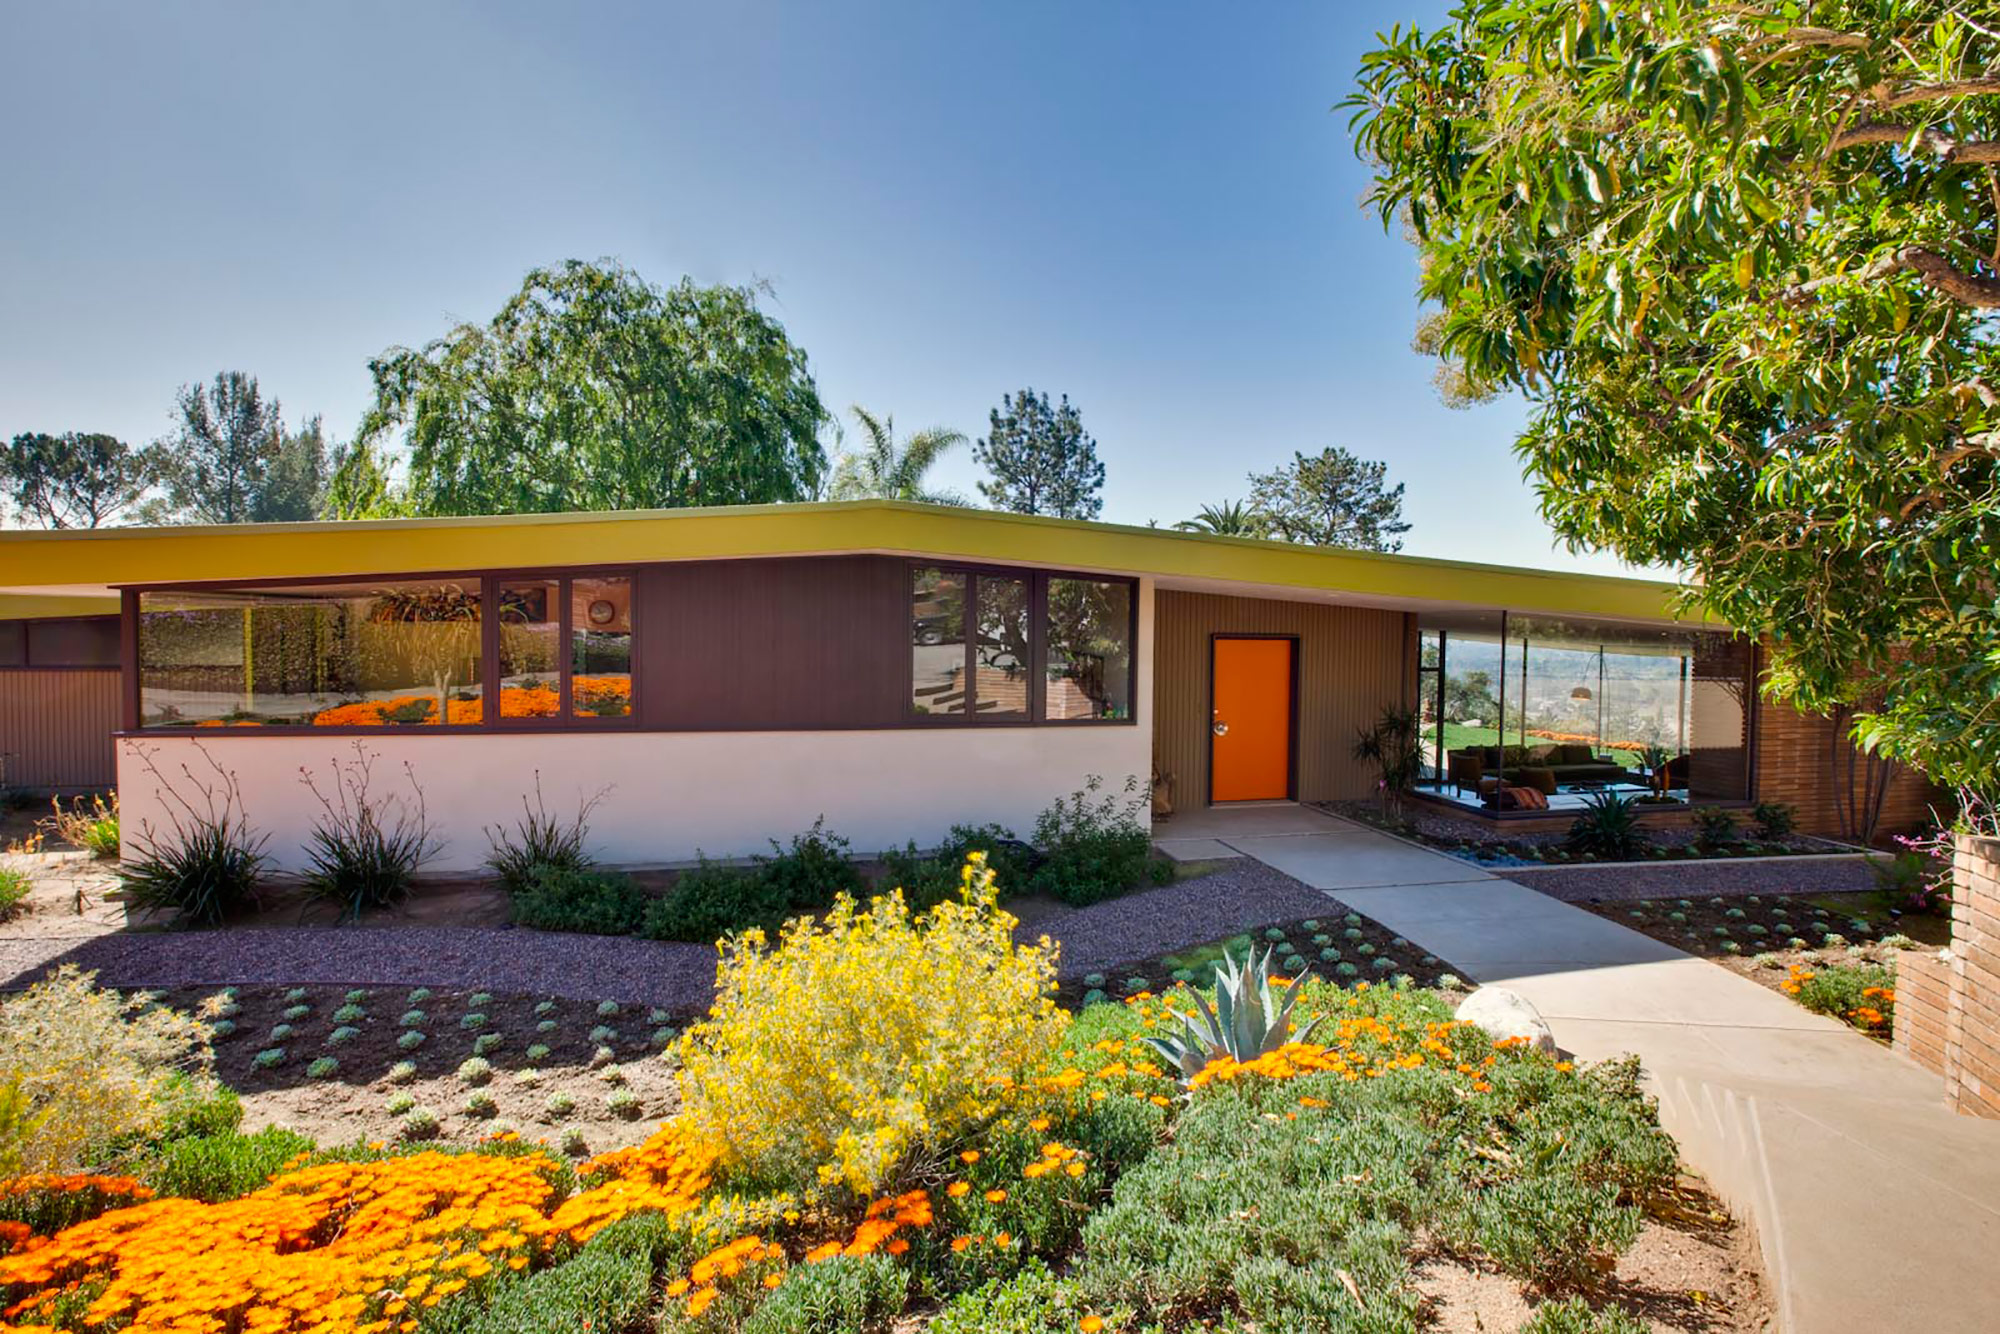 Mid century modern exterior house colors - Mid Century Modern Homes Paint Colors